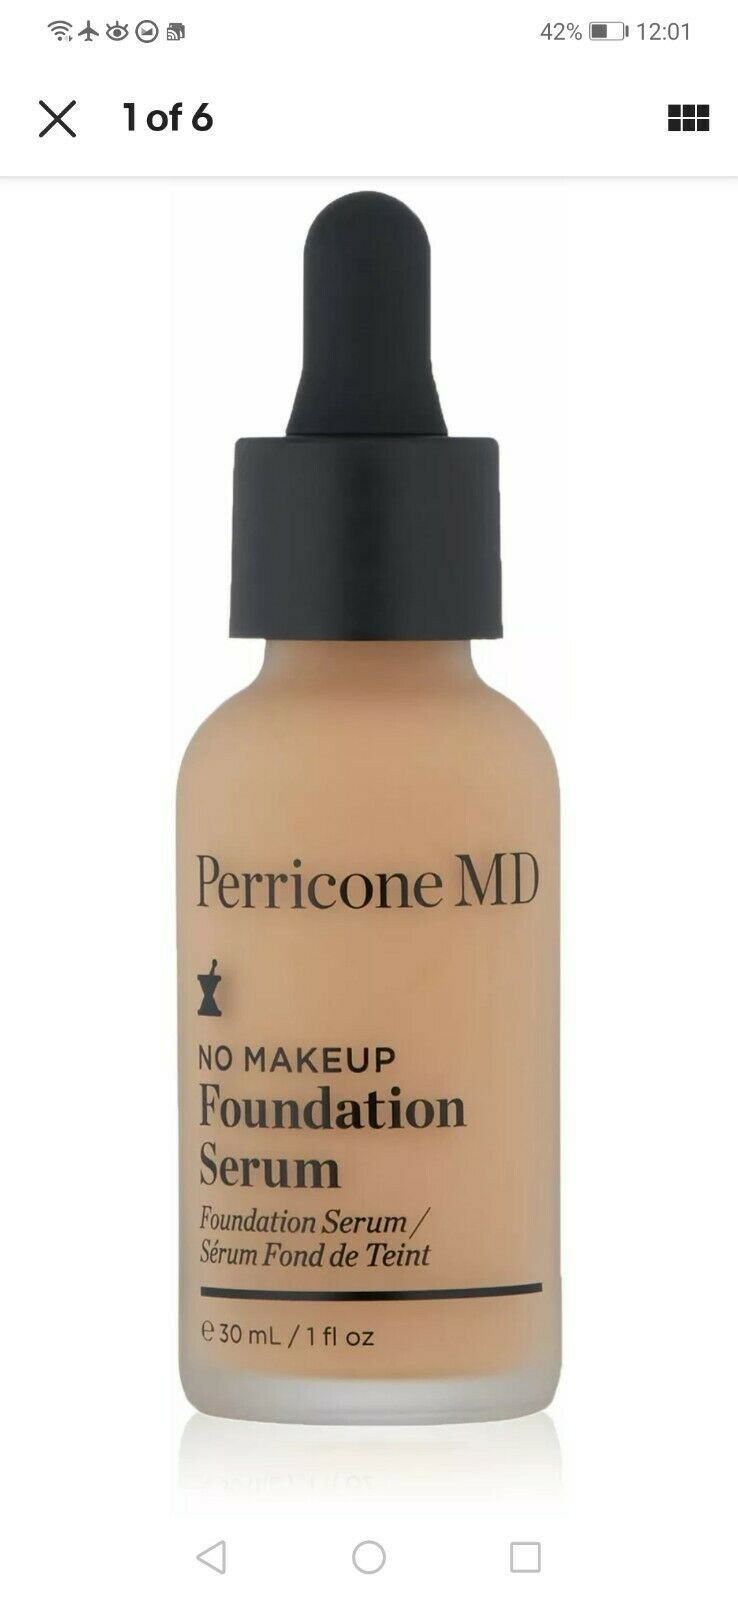 (1) NEW Perricone MD No Makeup Foundation Serum NUDE SPF